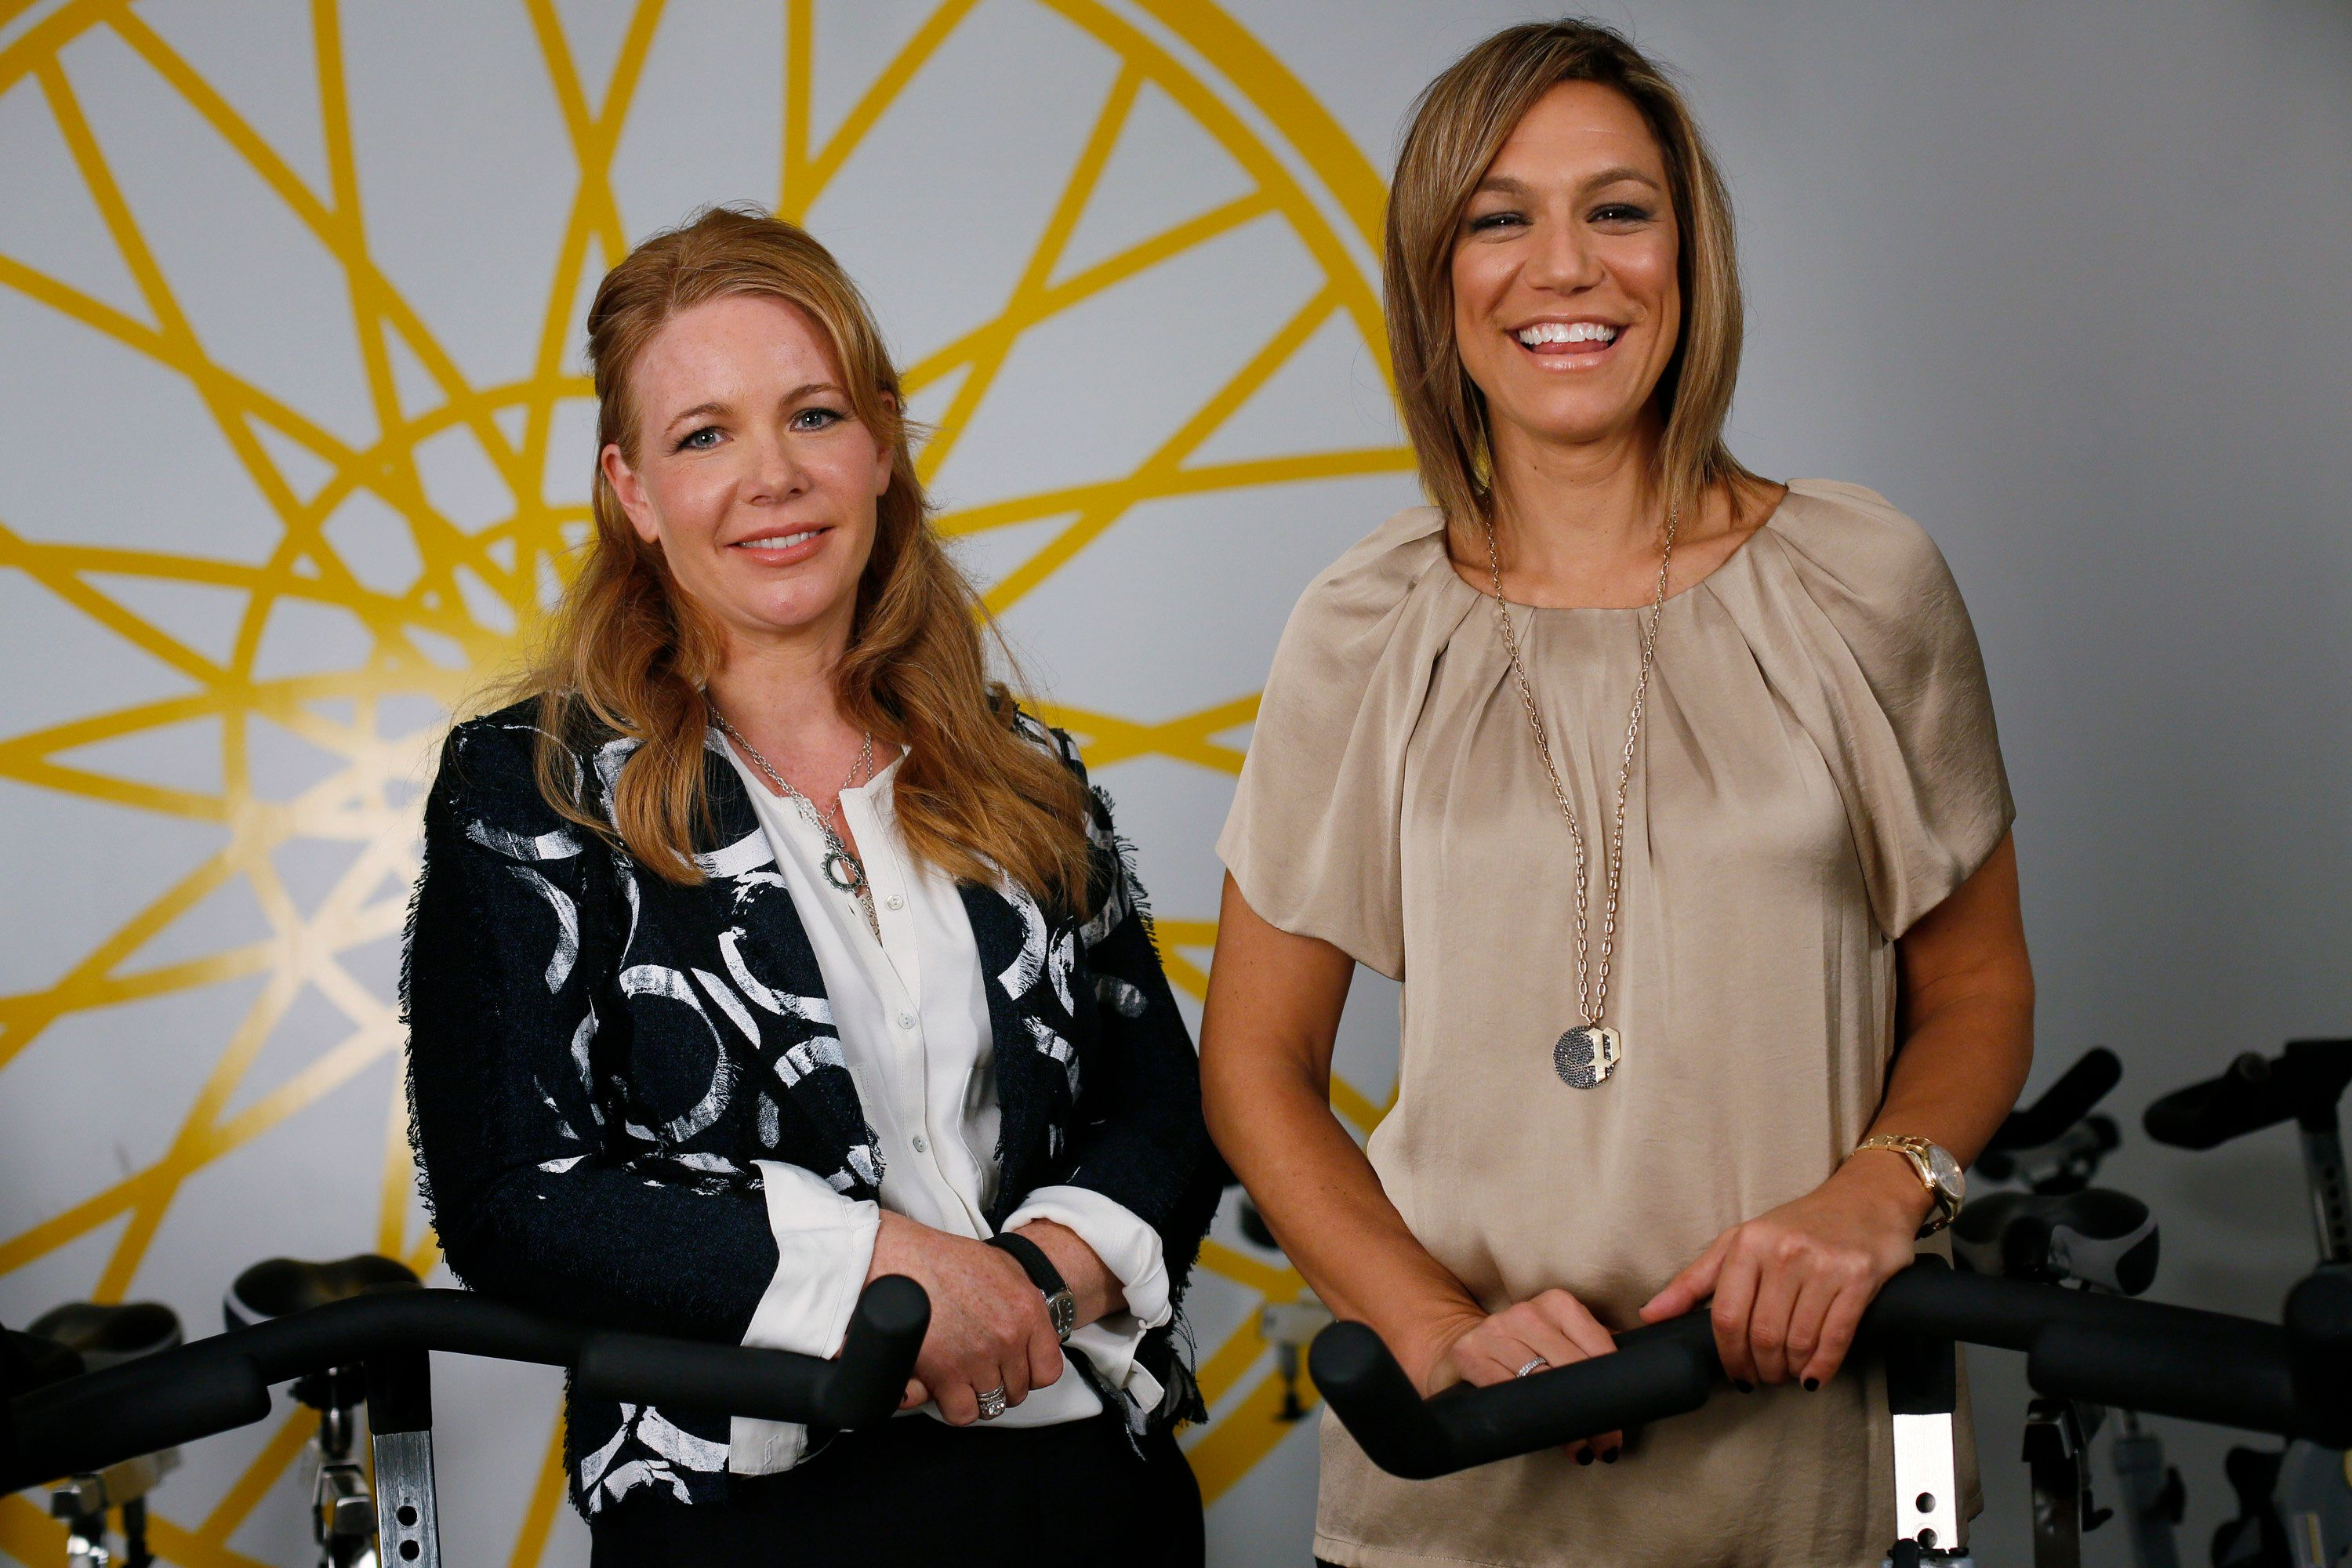 Elizabeth Cutler, left, and Julie Rice, right, co-founders of SoulCycle LLC, stand for a photo at a Soul Cycle studio in New York, U.S., on Tuesday, Oct. 2, 2012. SoulCycle offers an indoor cycling program that has riders work their core and use hand weights to achieve a full body workout. Photographer: Victor J. Blue/Bloomberg via Getty Images